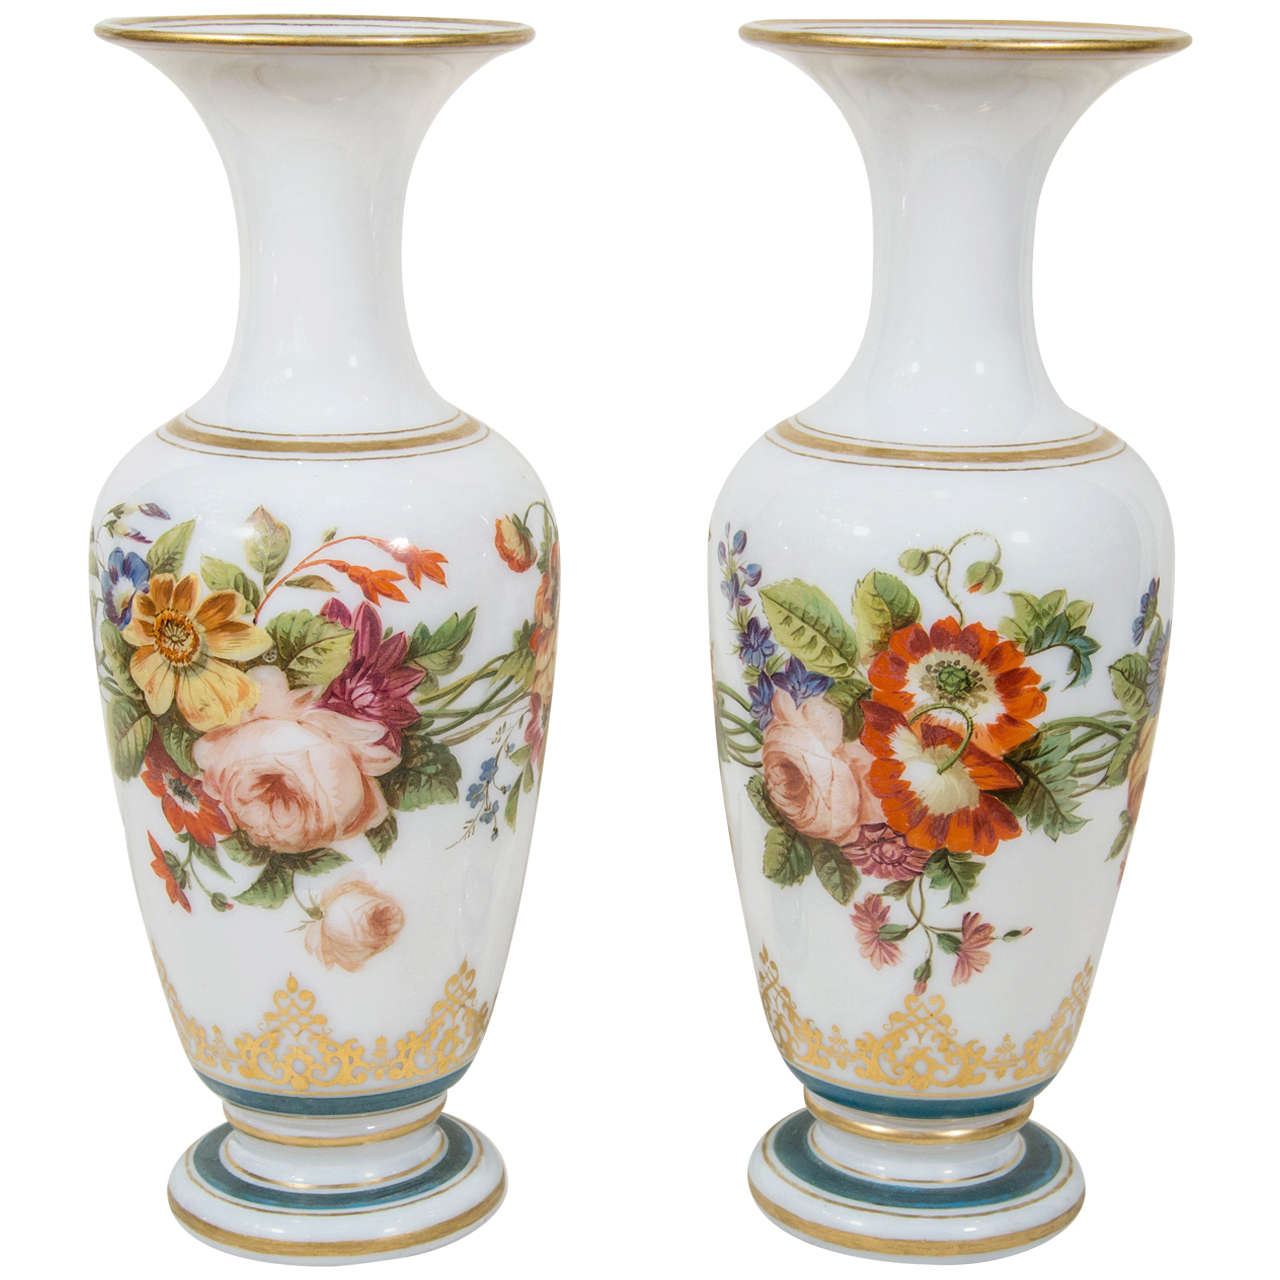 225 & Pair of Antique Opaline Glass Vases with Hand-Painted Roses ...